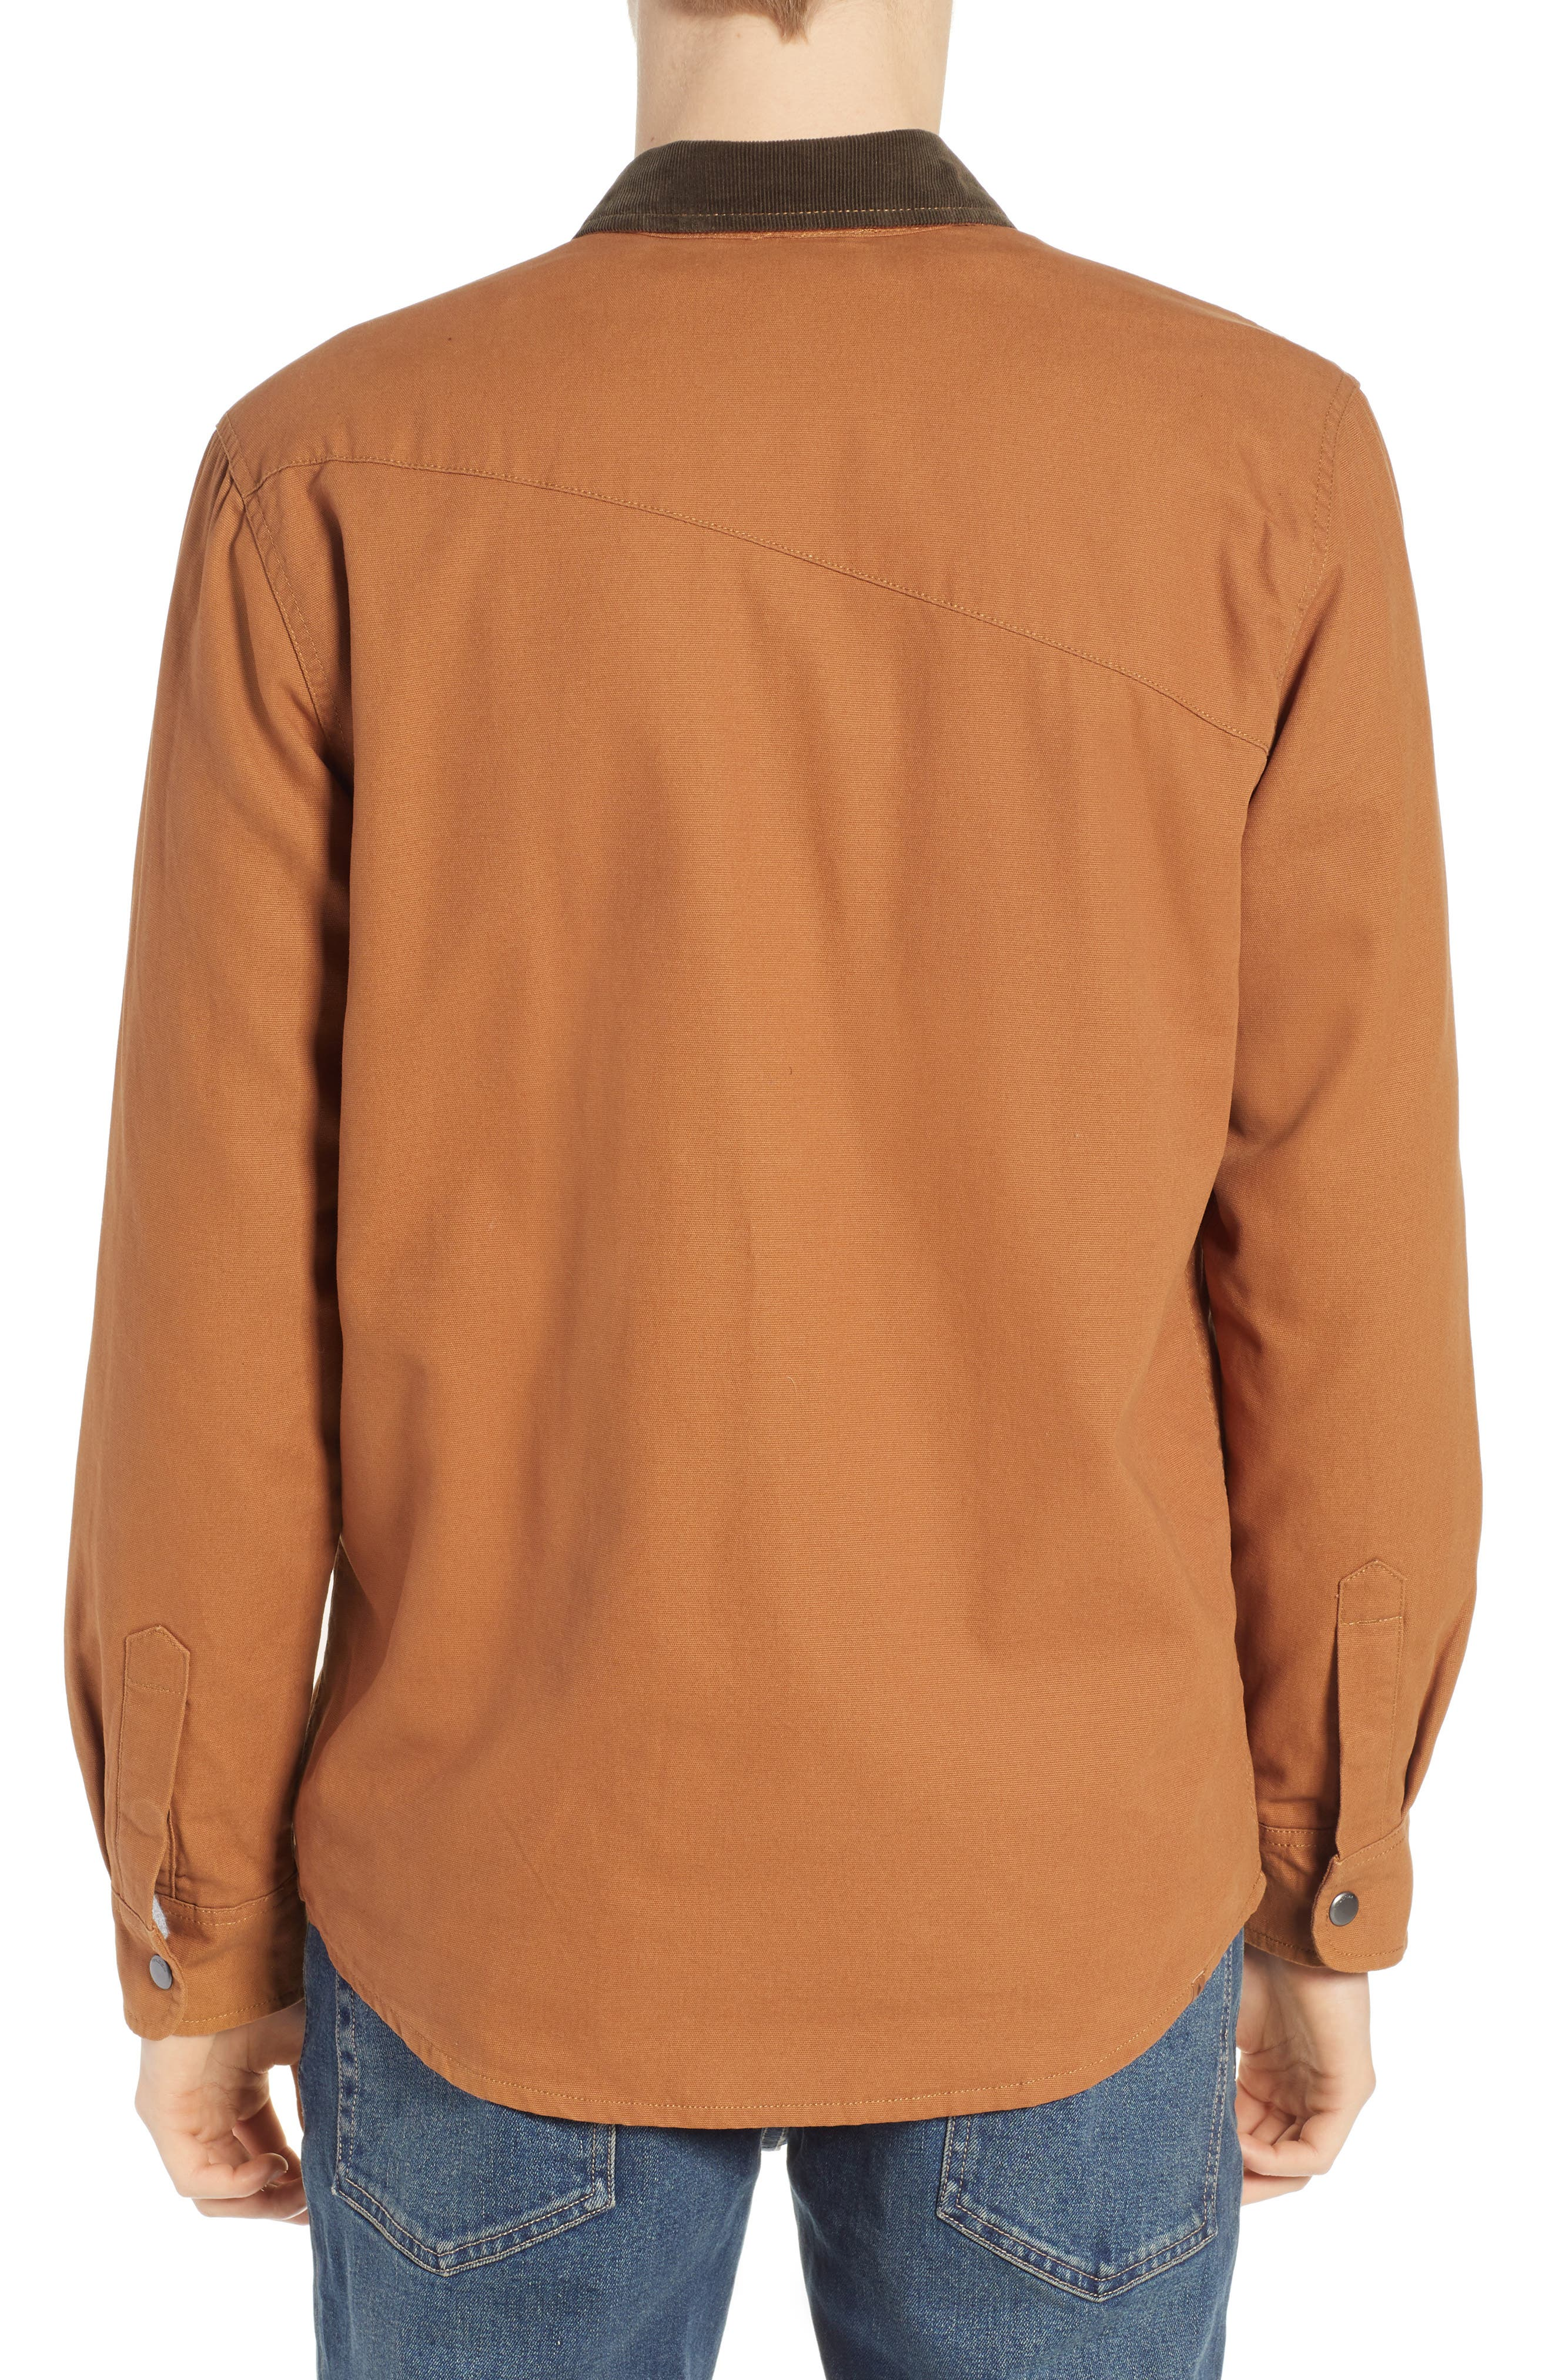 Larkin Classic Fit Jacket,                             Alternate thumbnail 2, color,                             CAMEL